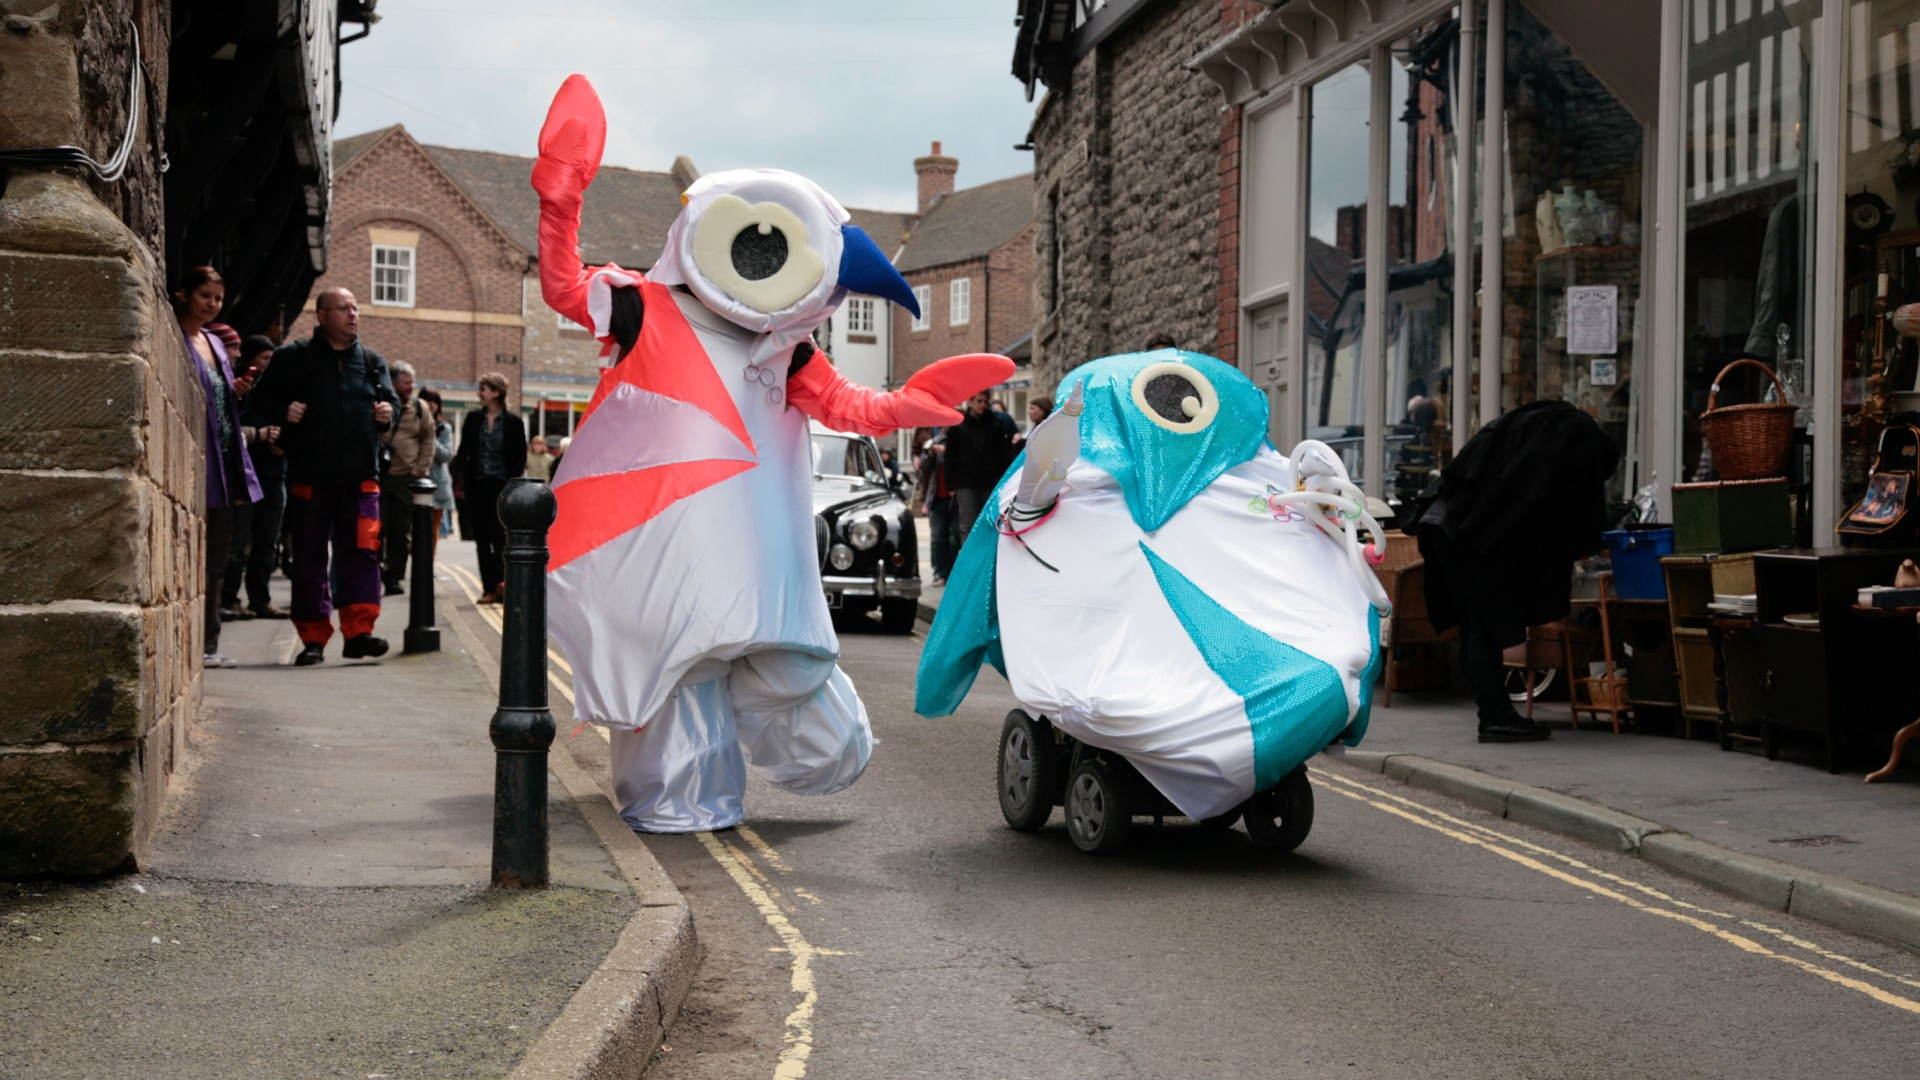 The artists are dressed as the cartoonish London Olympics mascots. They are moving through the streets.